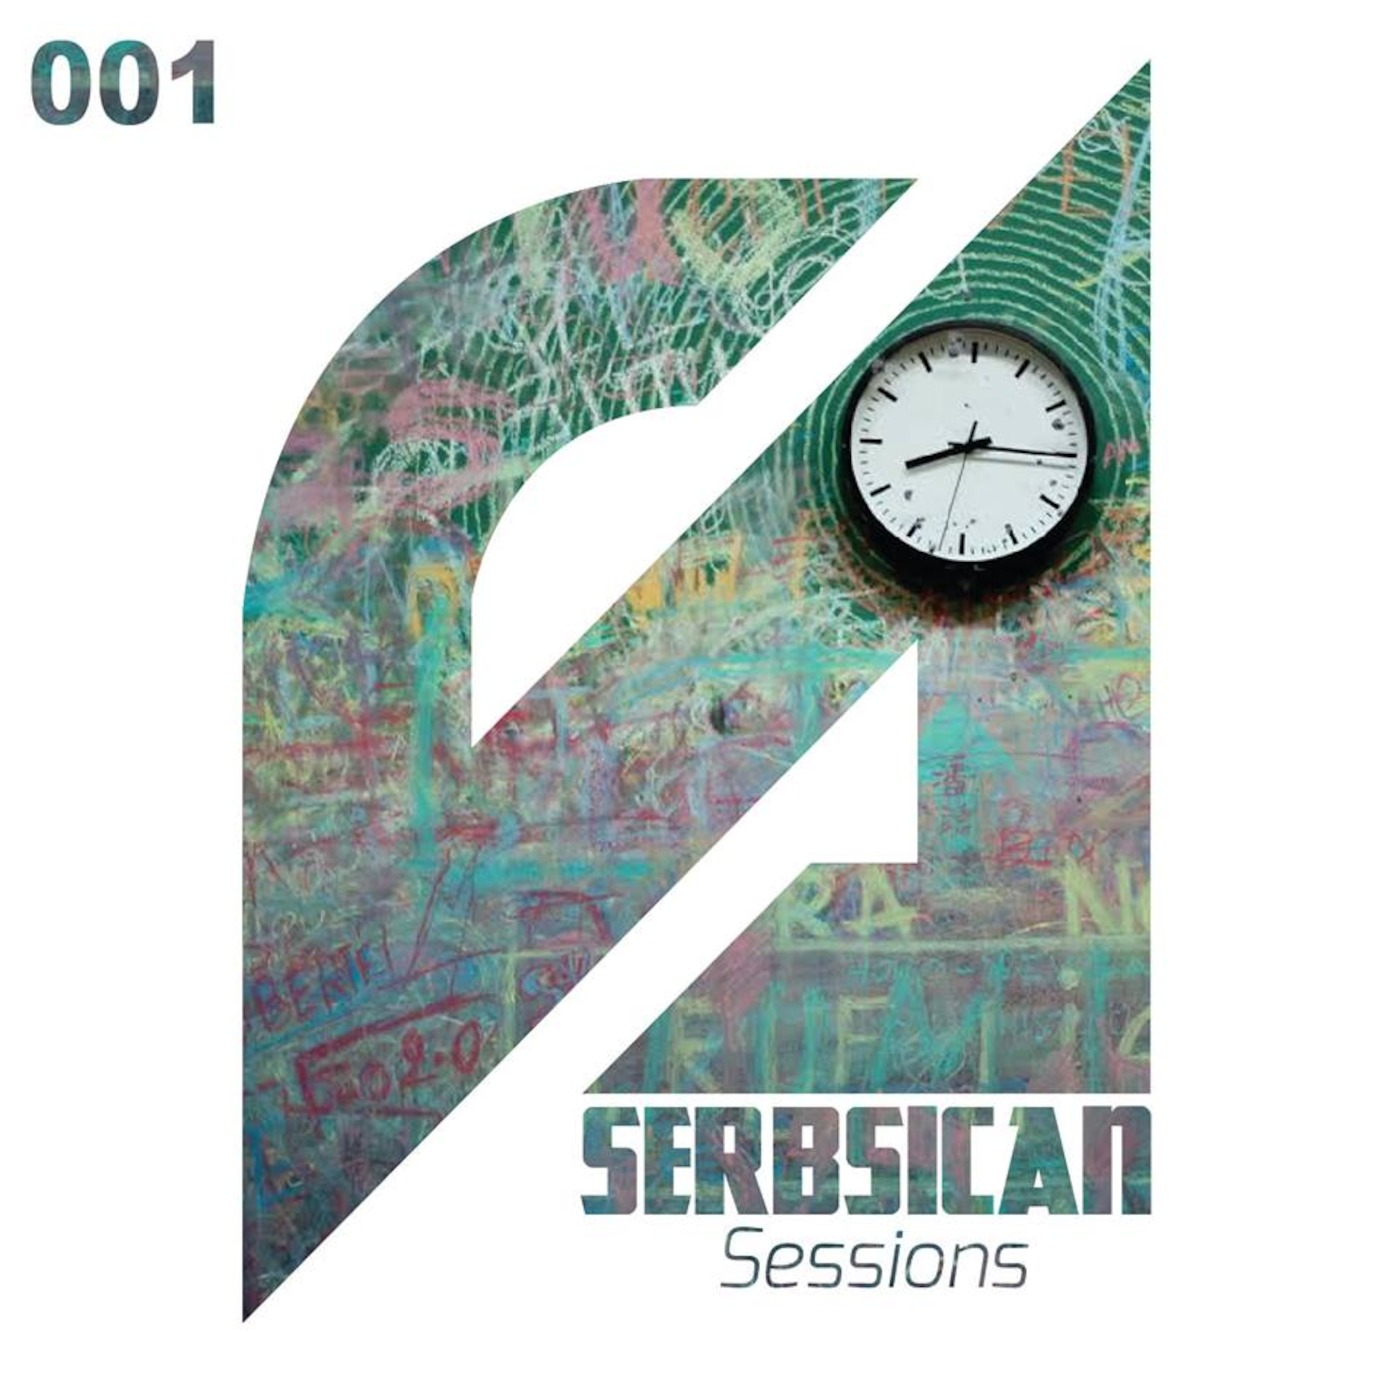 Serbsican Sessions